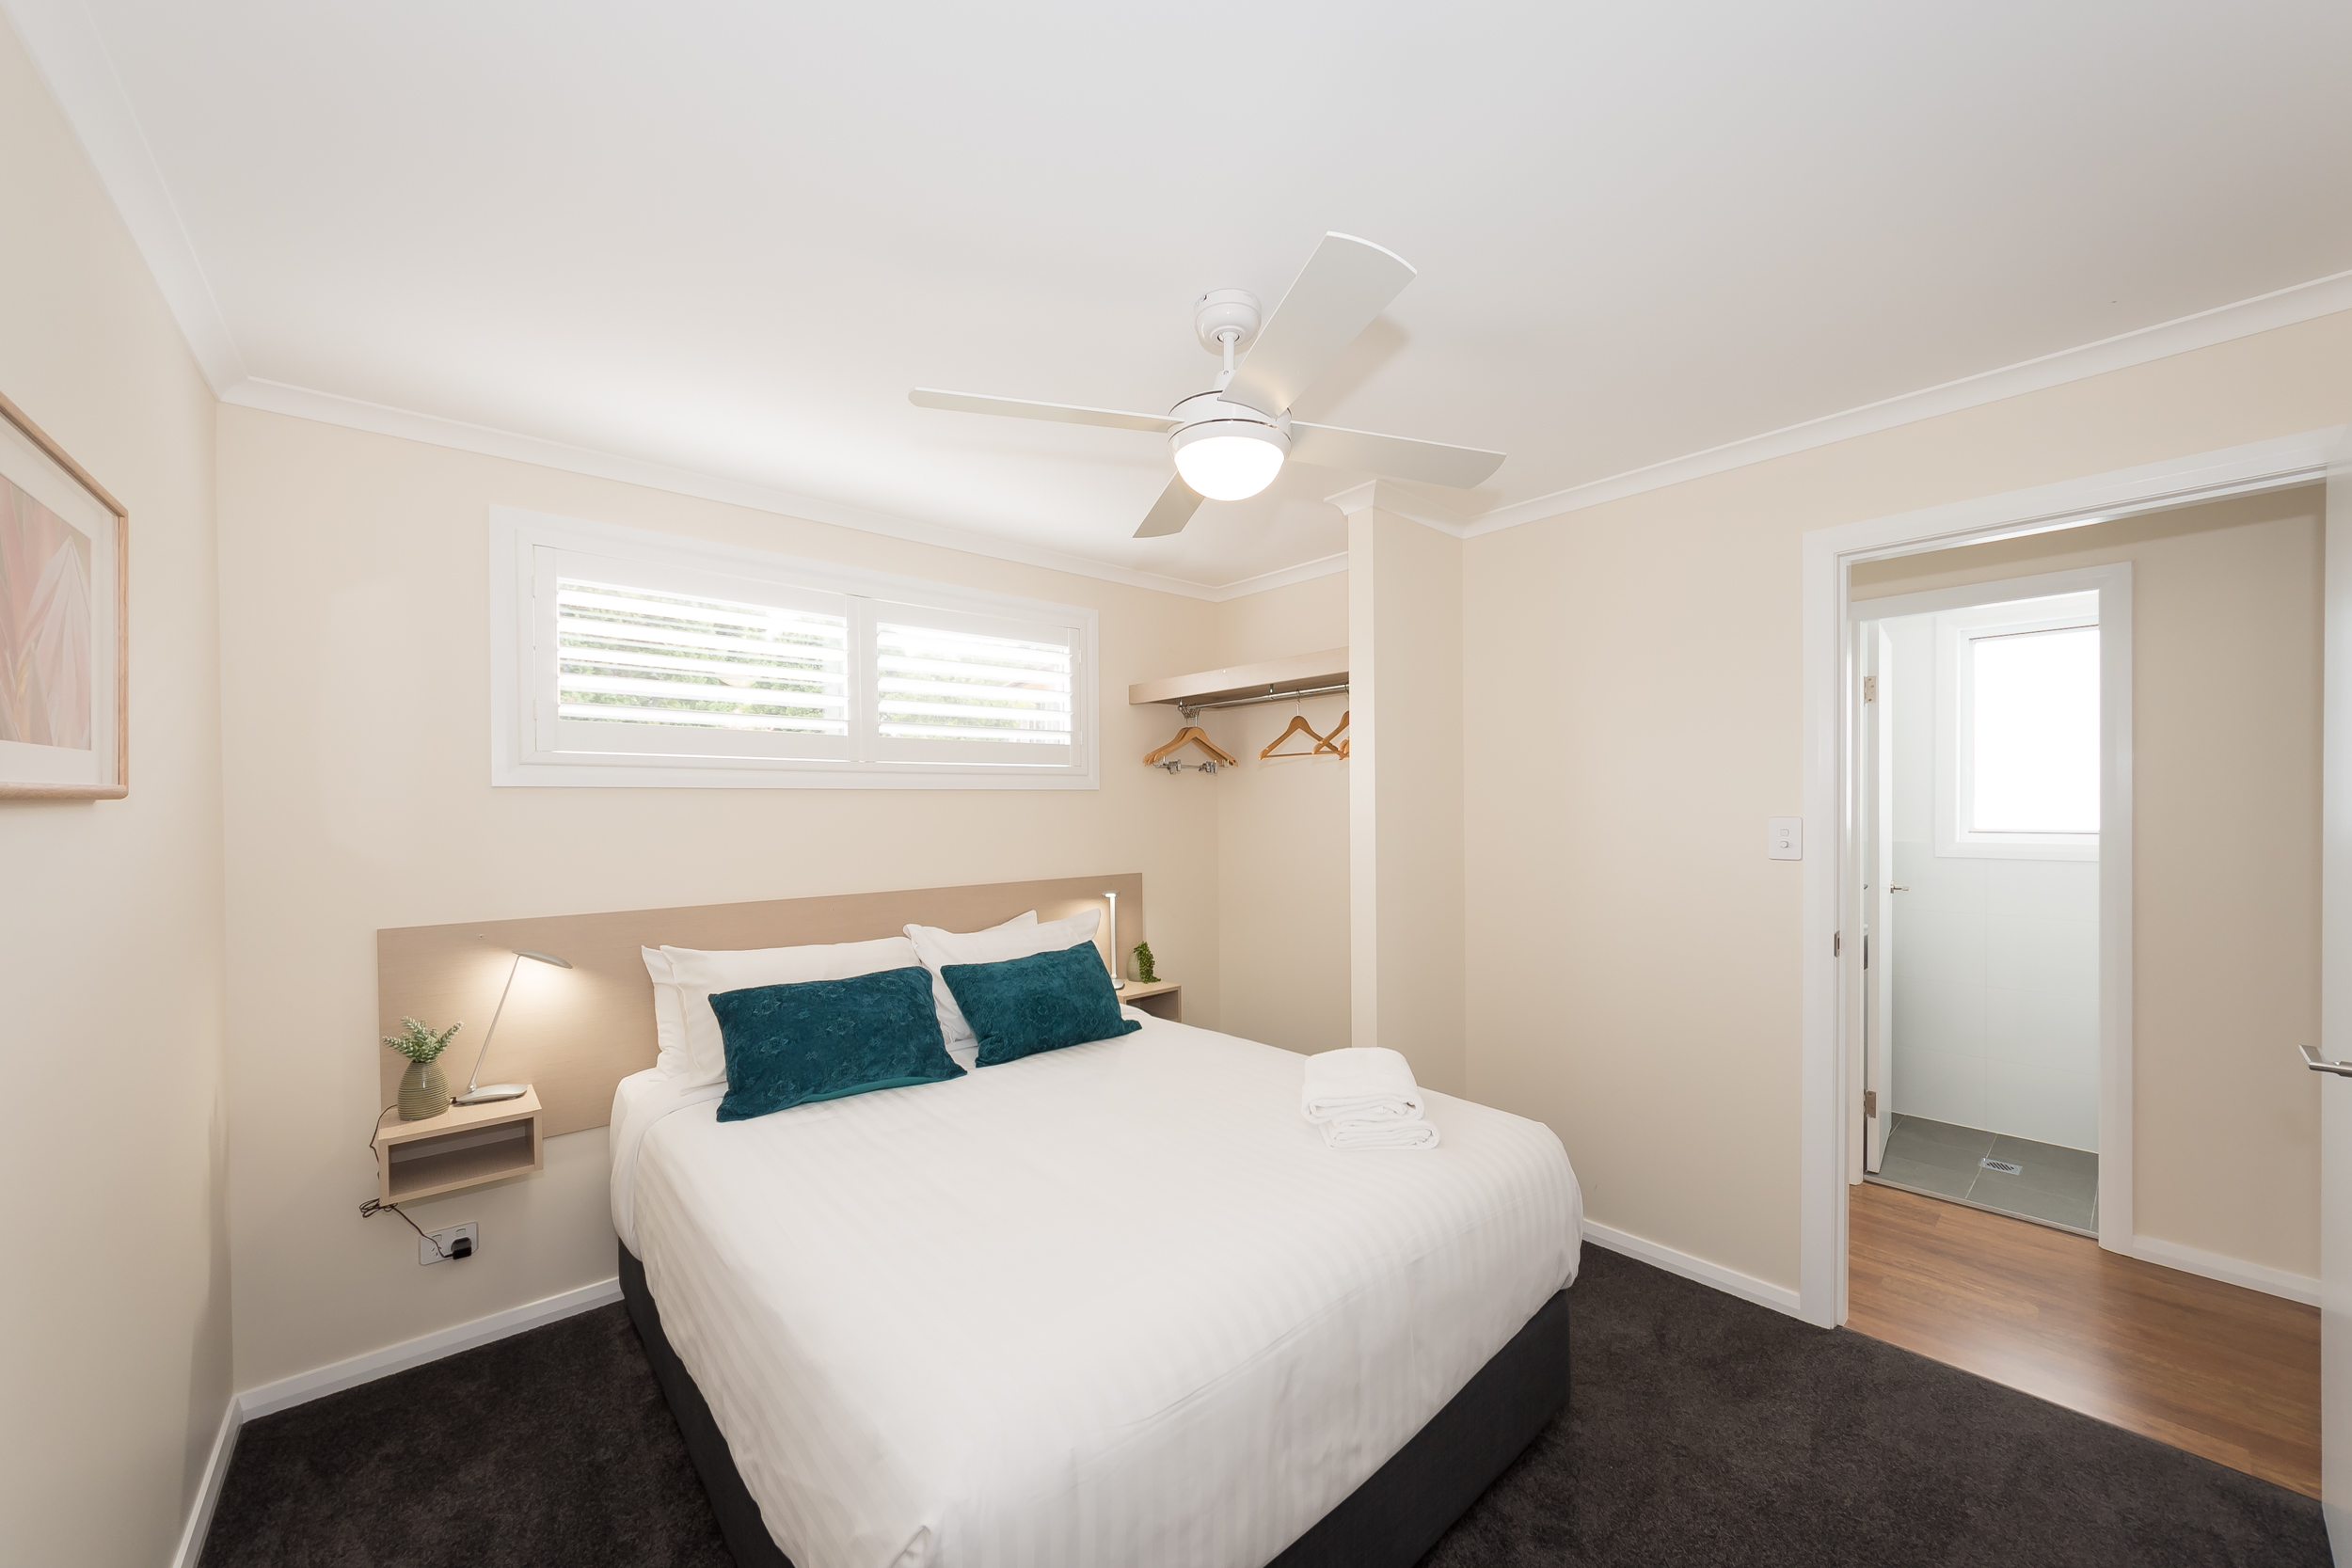 Main bedroom with comfy queen size bed